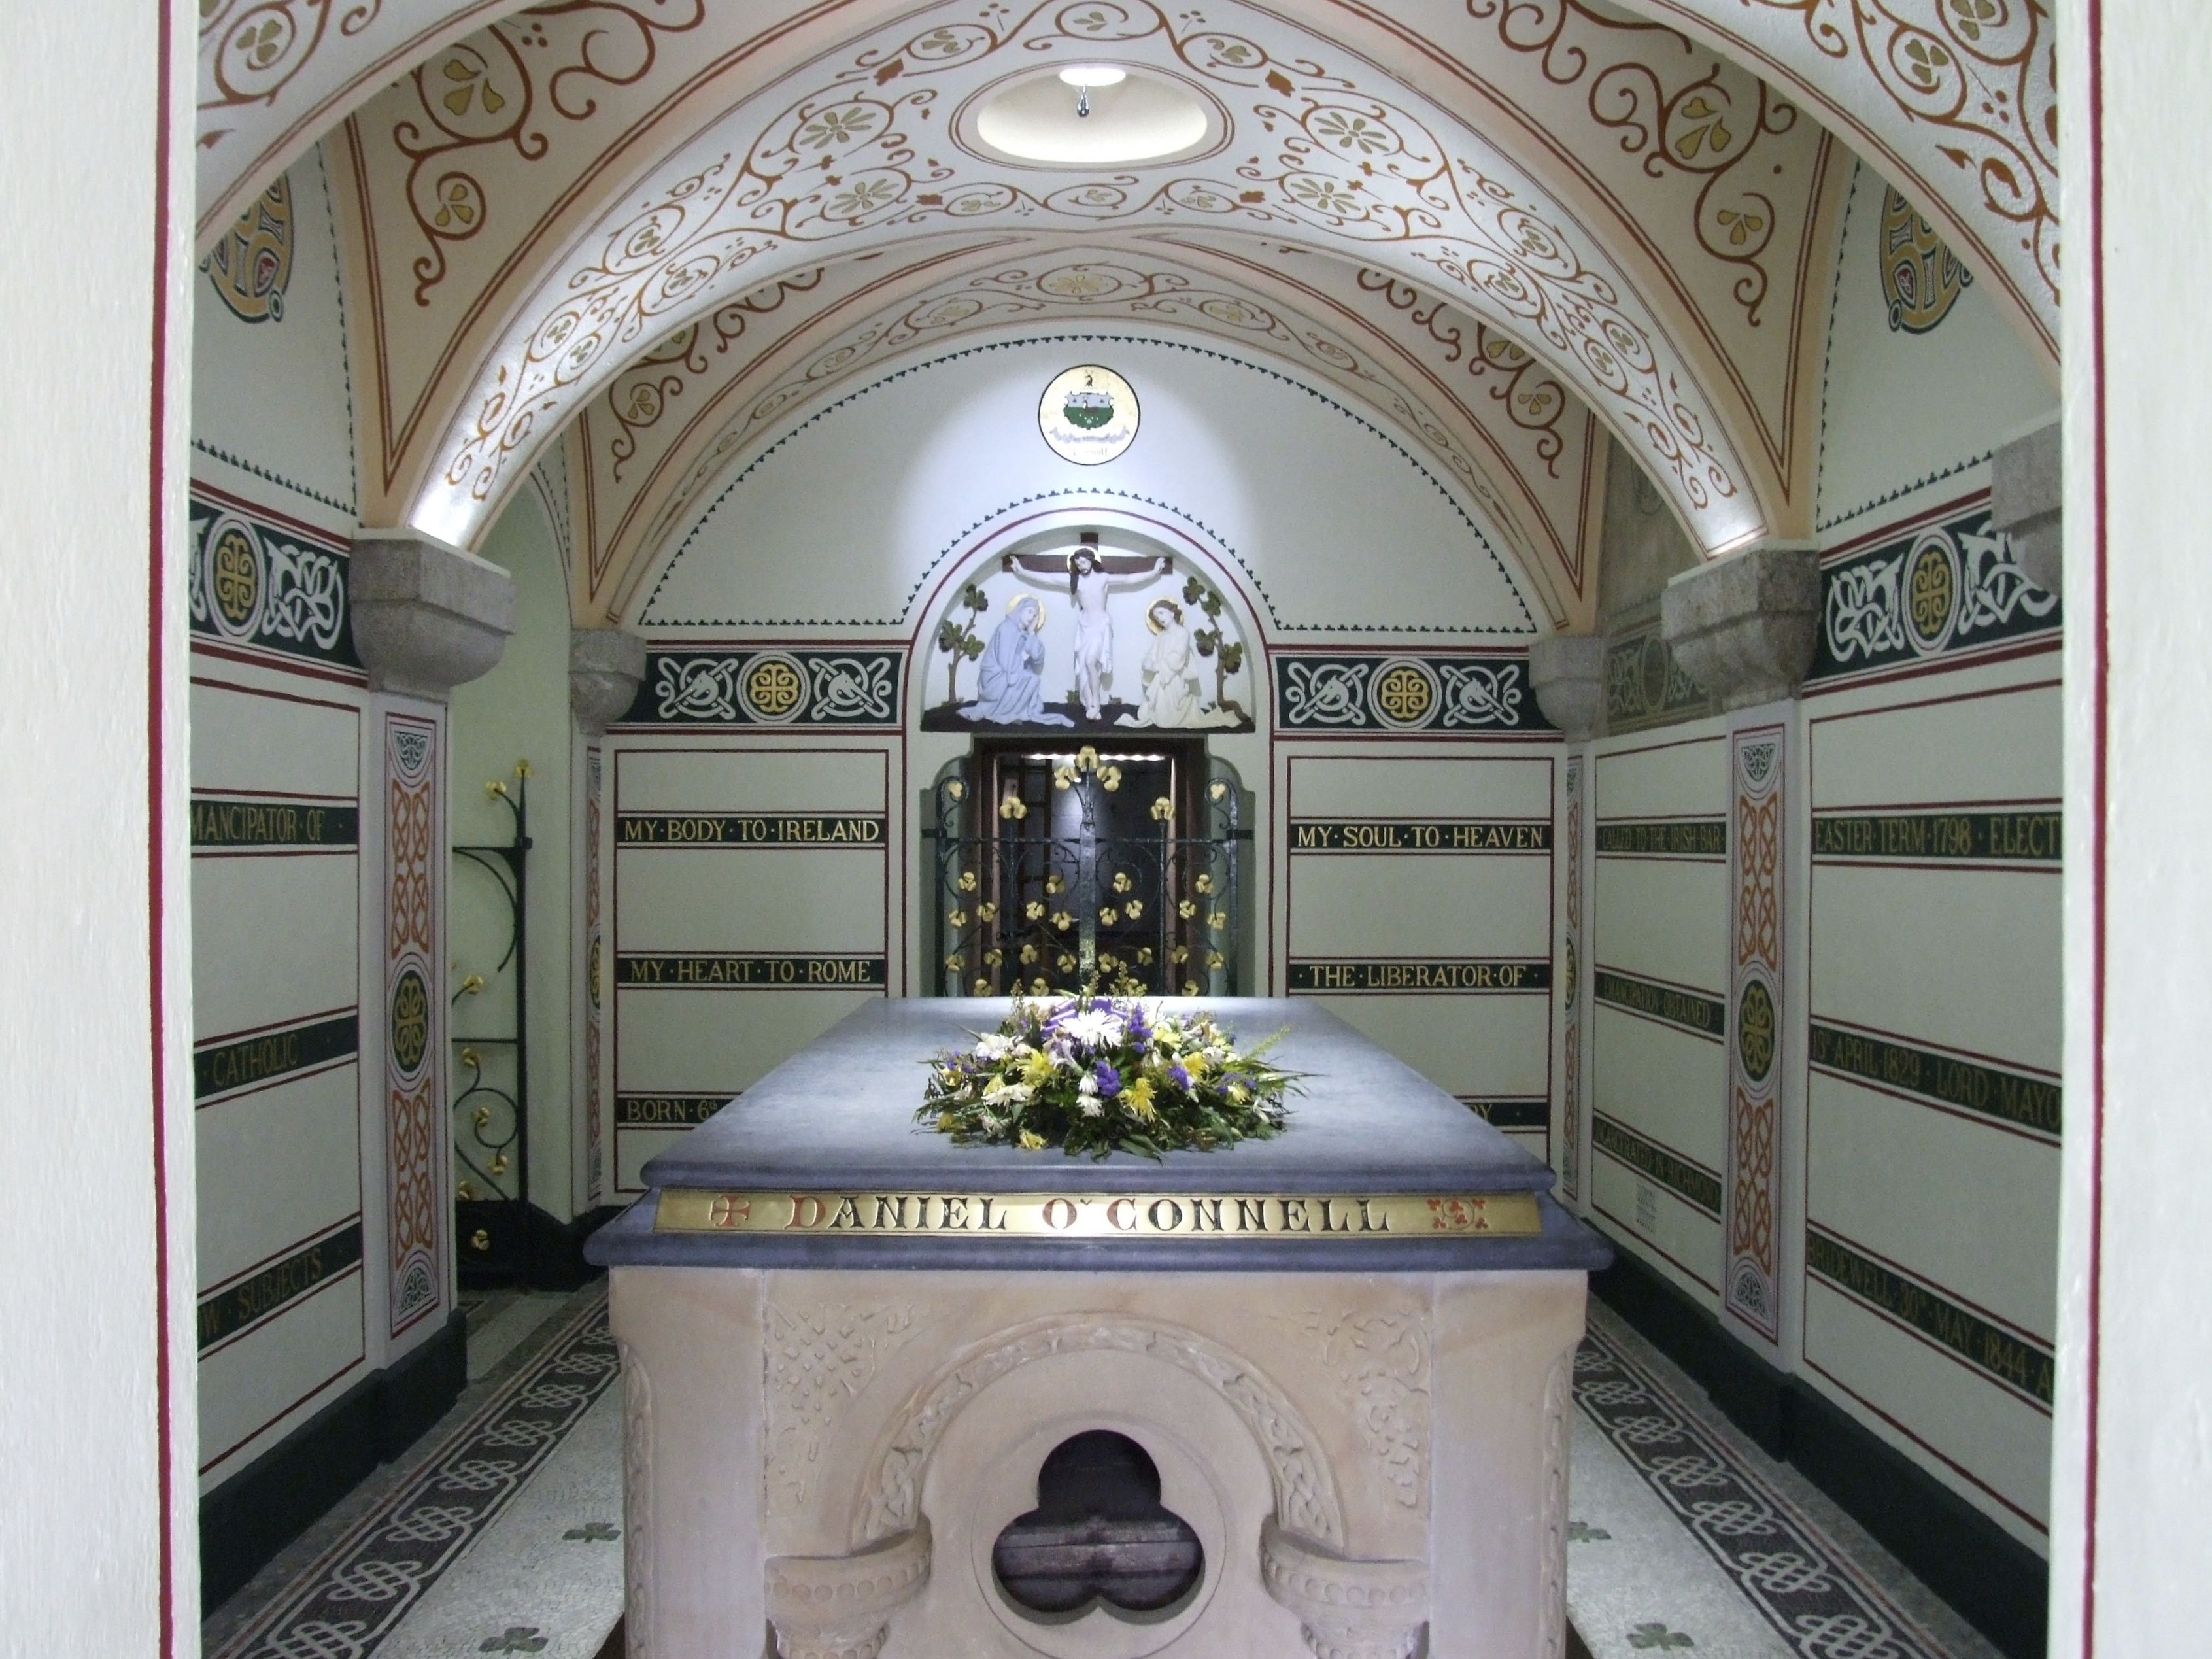 Inside Daniel O'Connell's crypt.